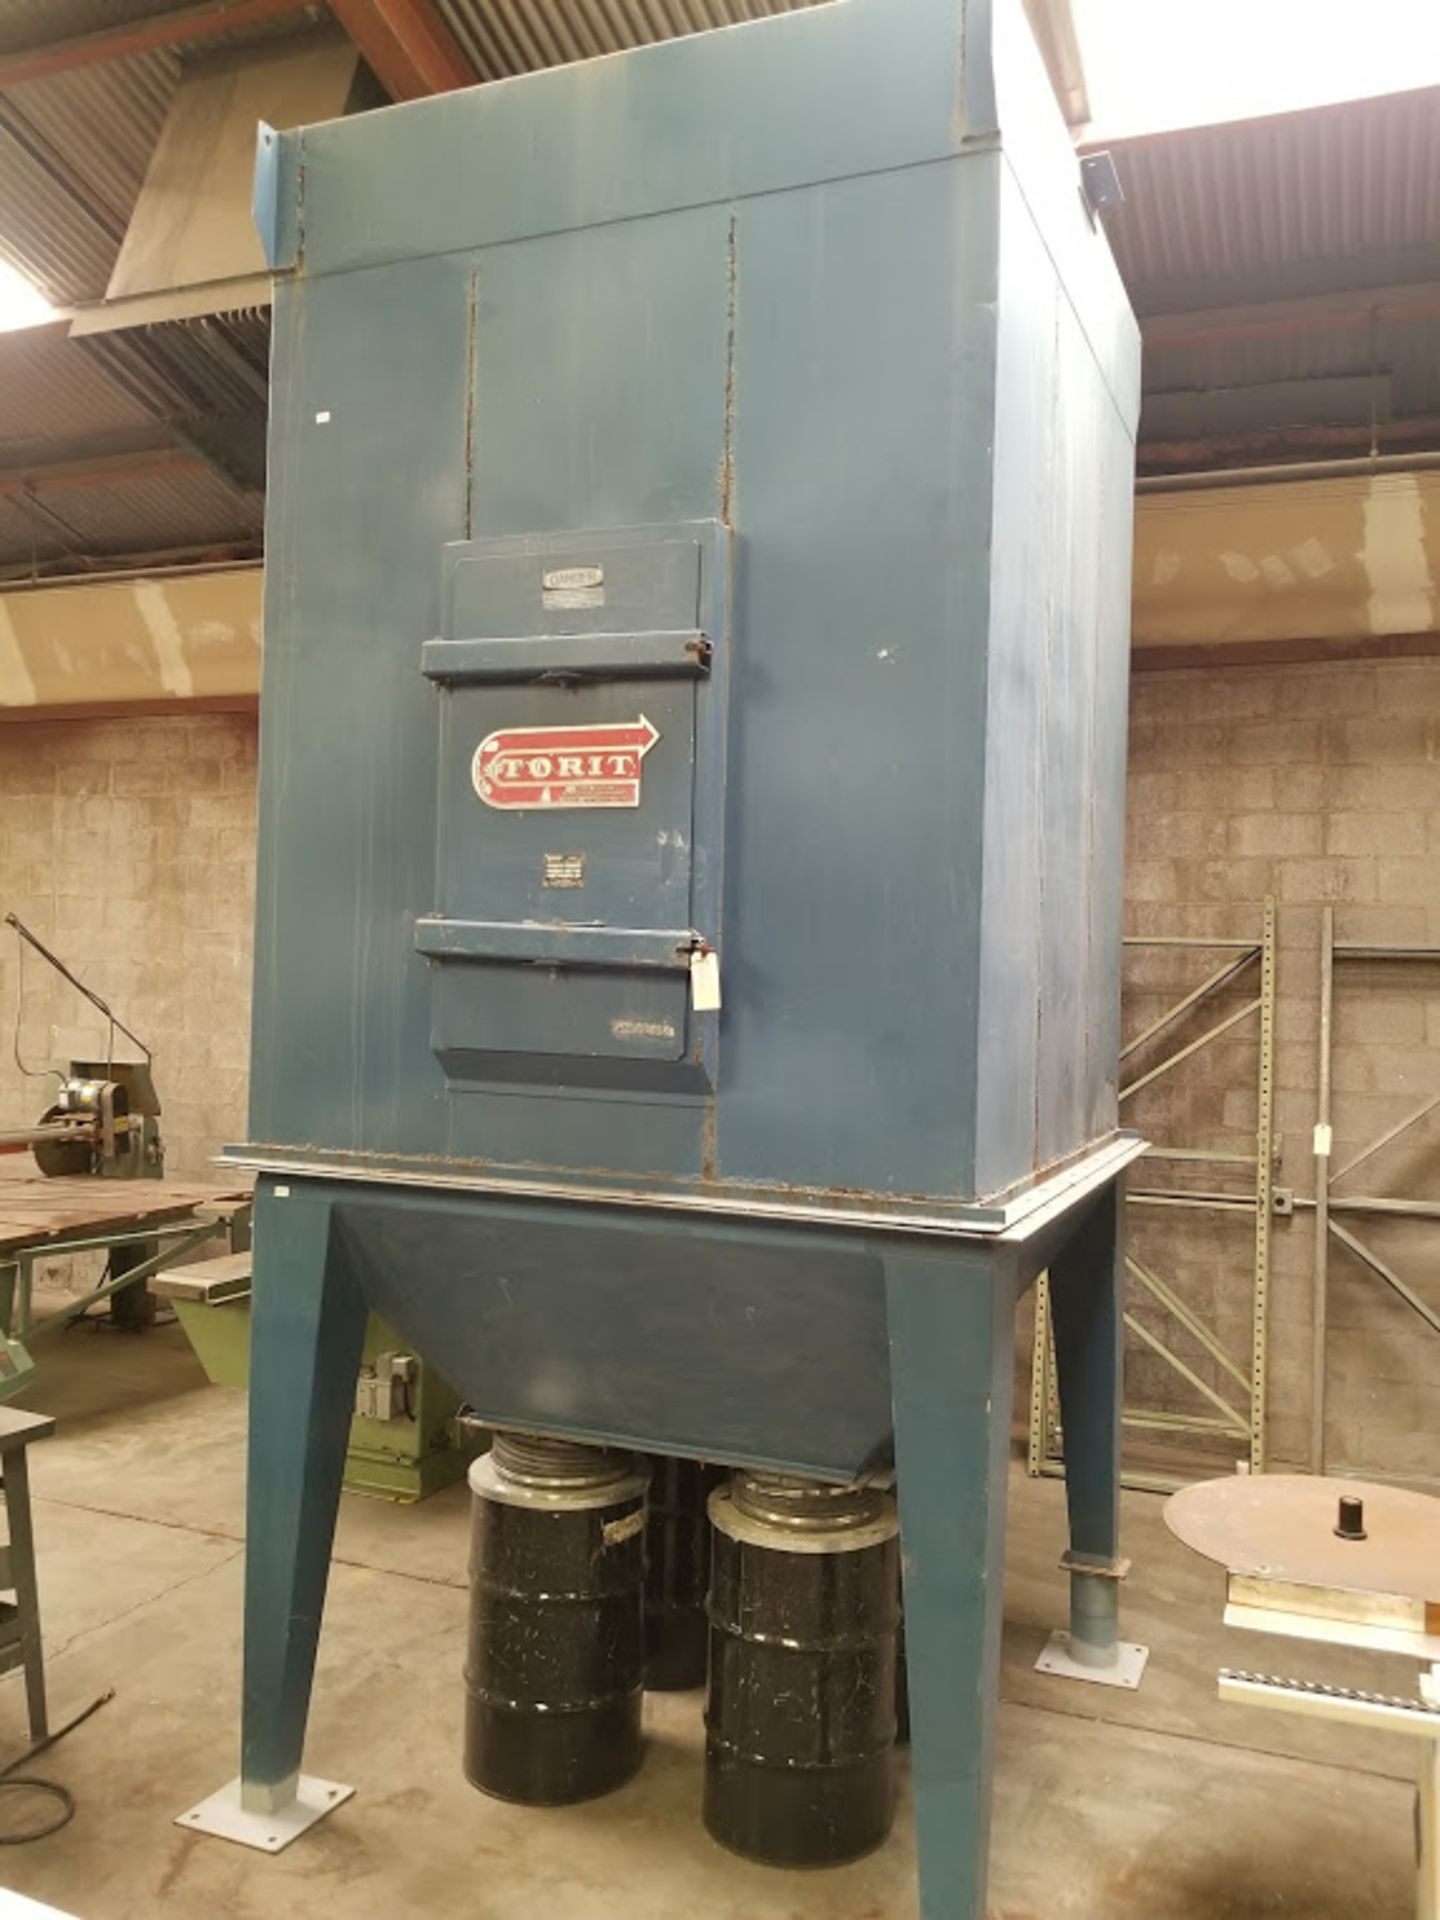 Lot 7 - Torit Bag House Dust Collector, Model #MIC-770-455 230/460 volt 15 HP 3phase with 4 Steel Drums